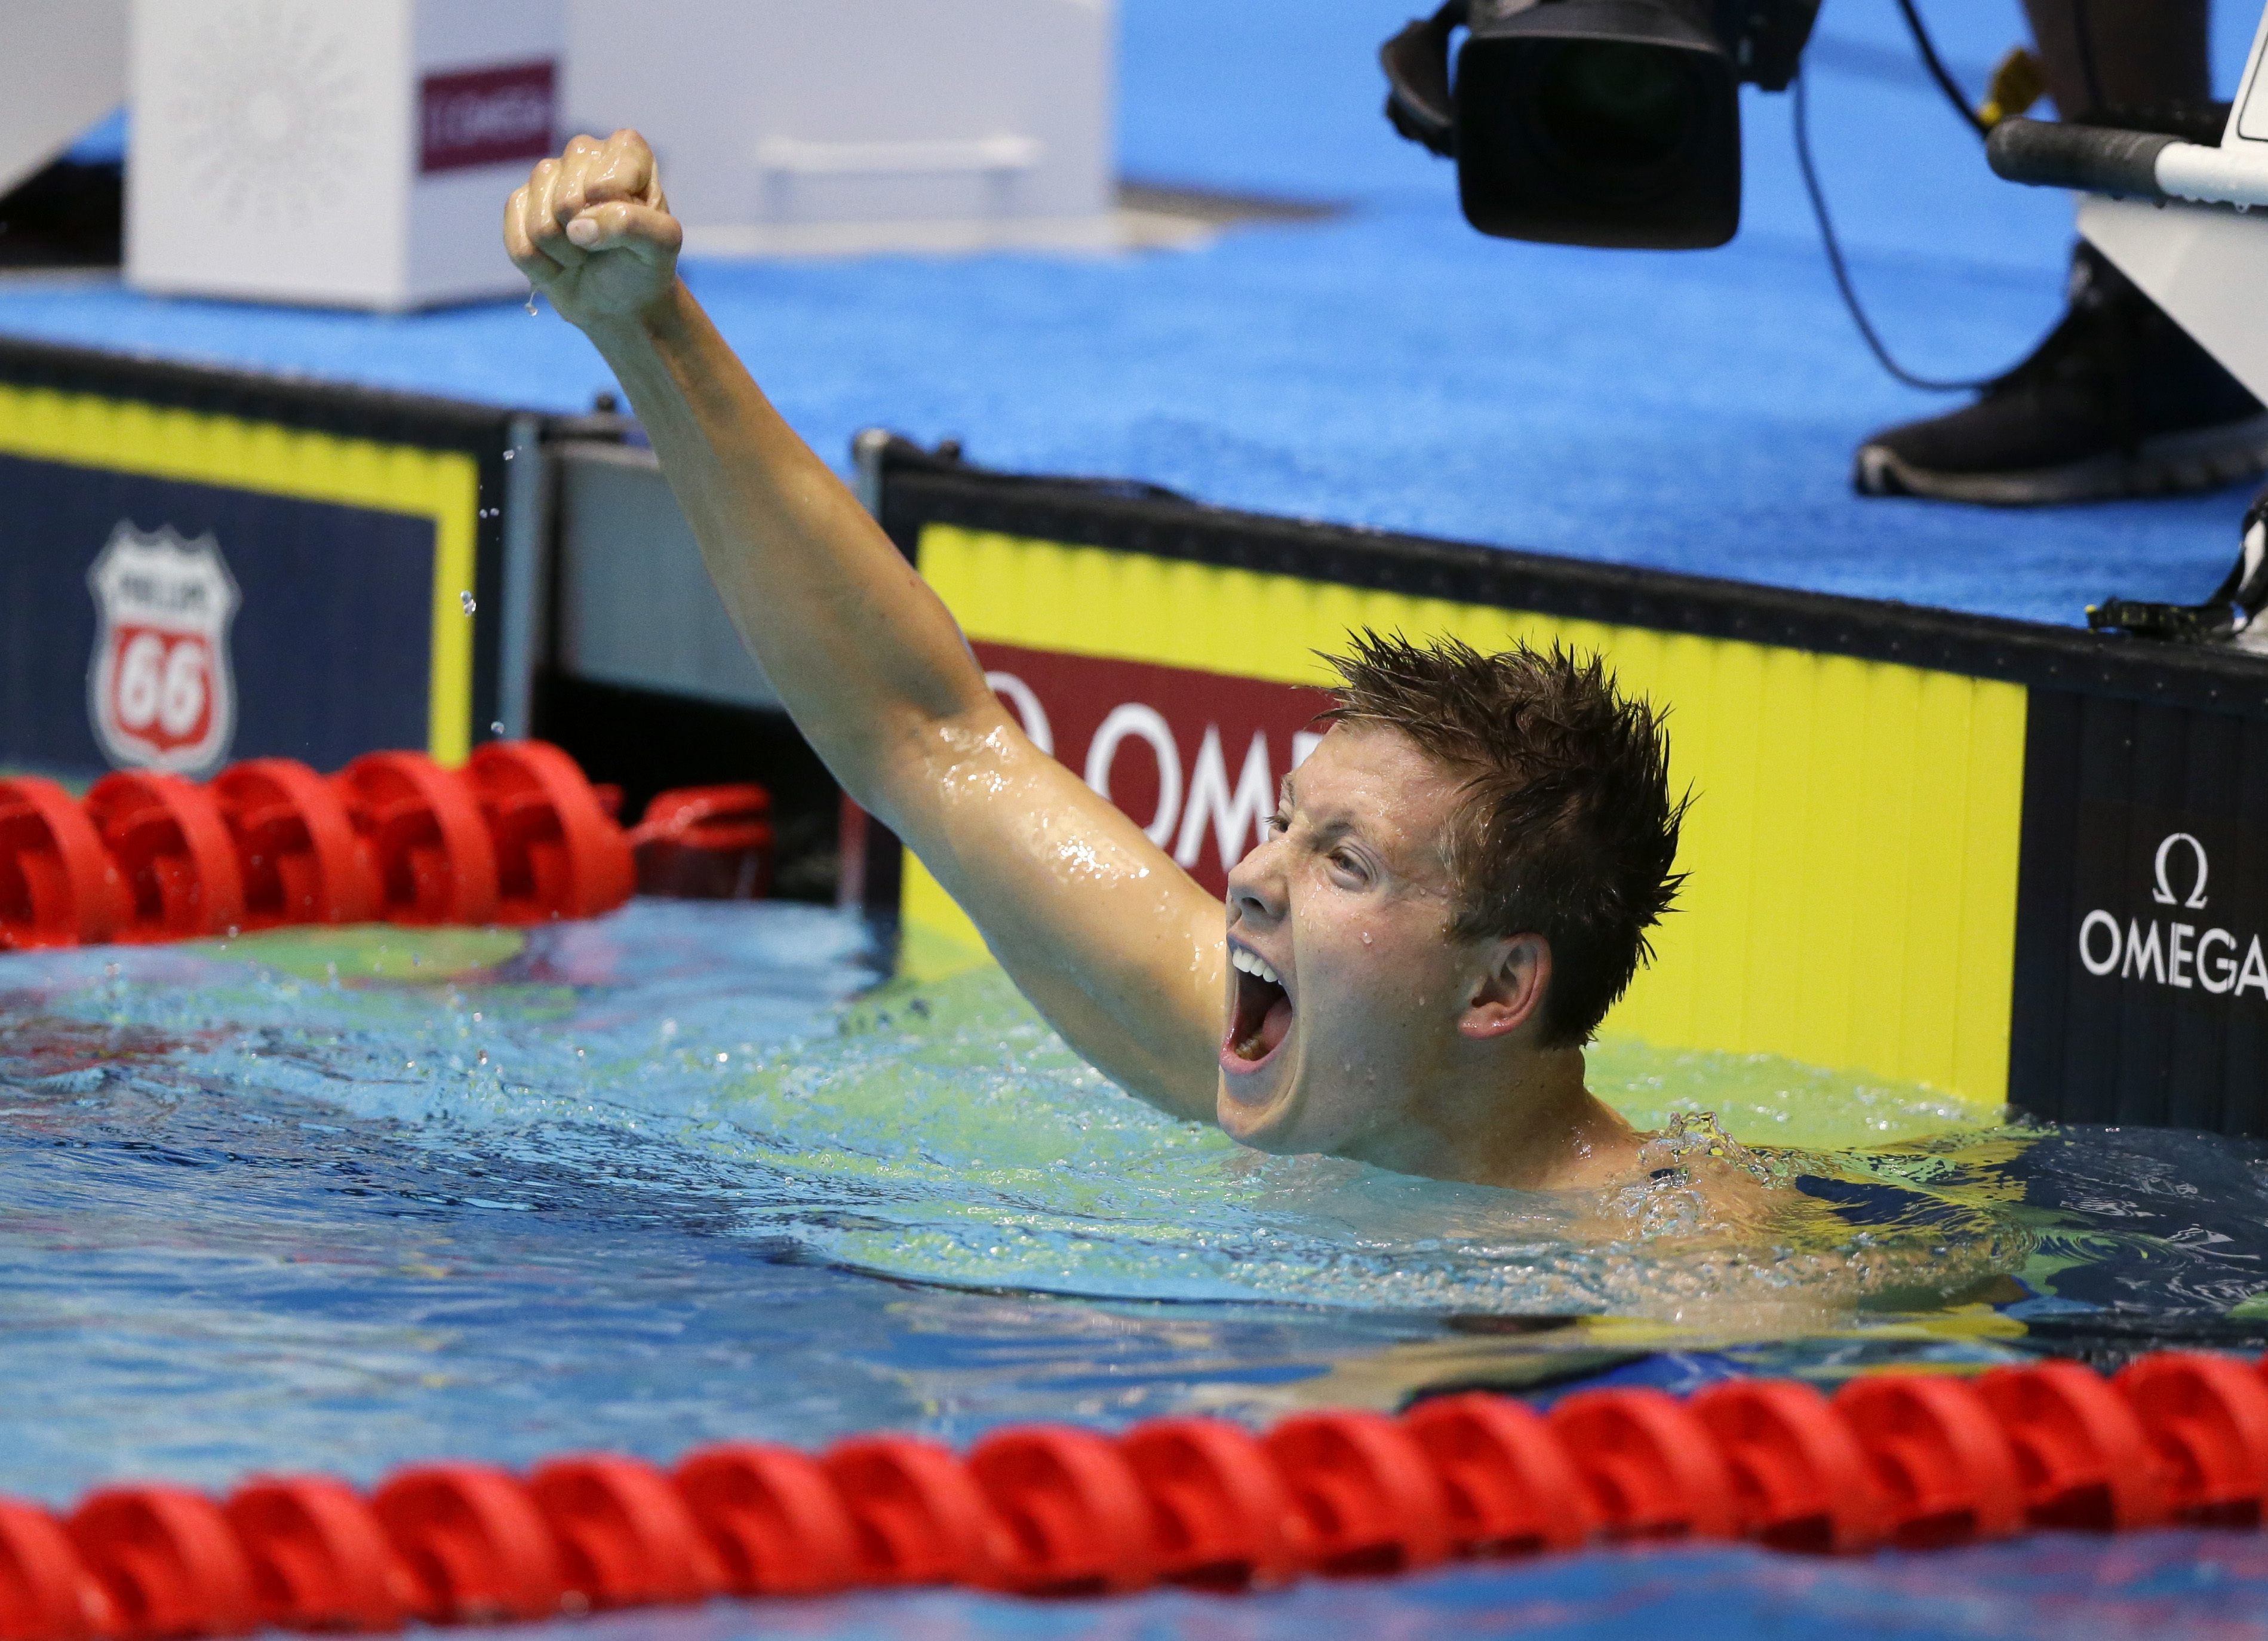 True Sweetser celebrates after winning the men's 1,500-meter freestyle at the U.S. swimming championships in Indianapolis, Tuesday, June 27, 2017. (AP Photo/Michael Conroy)